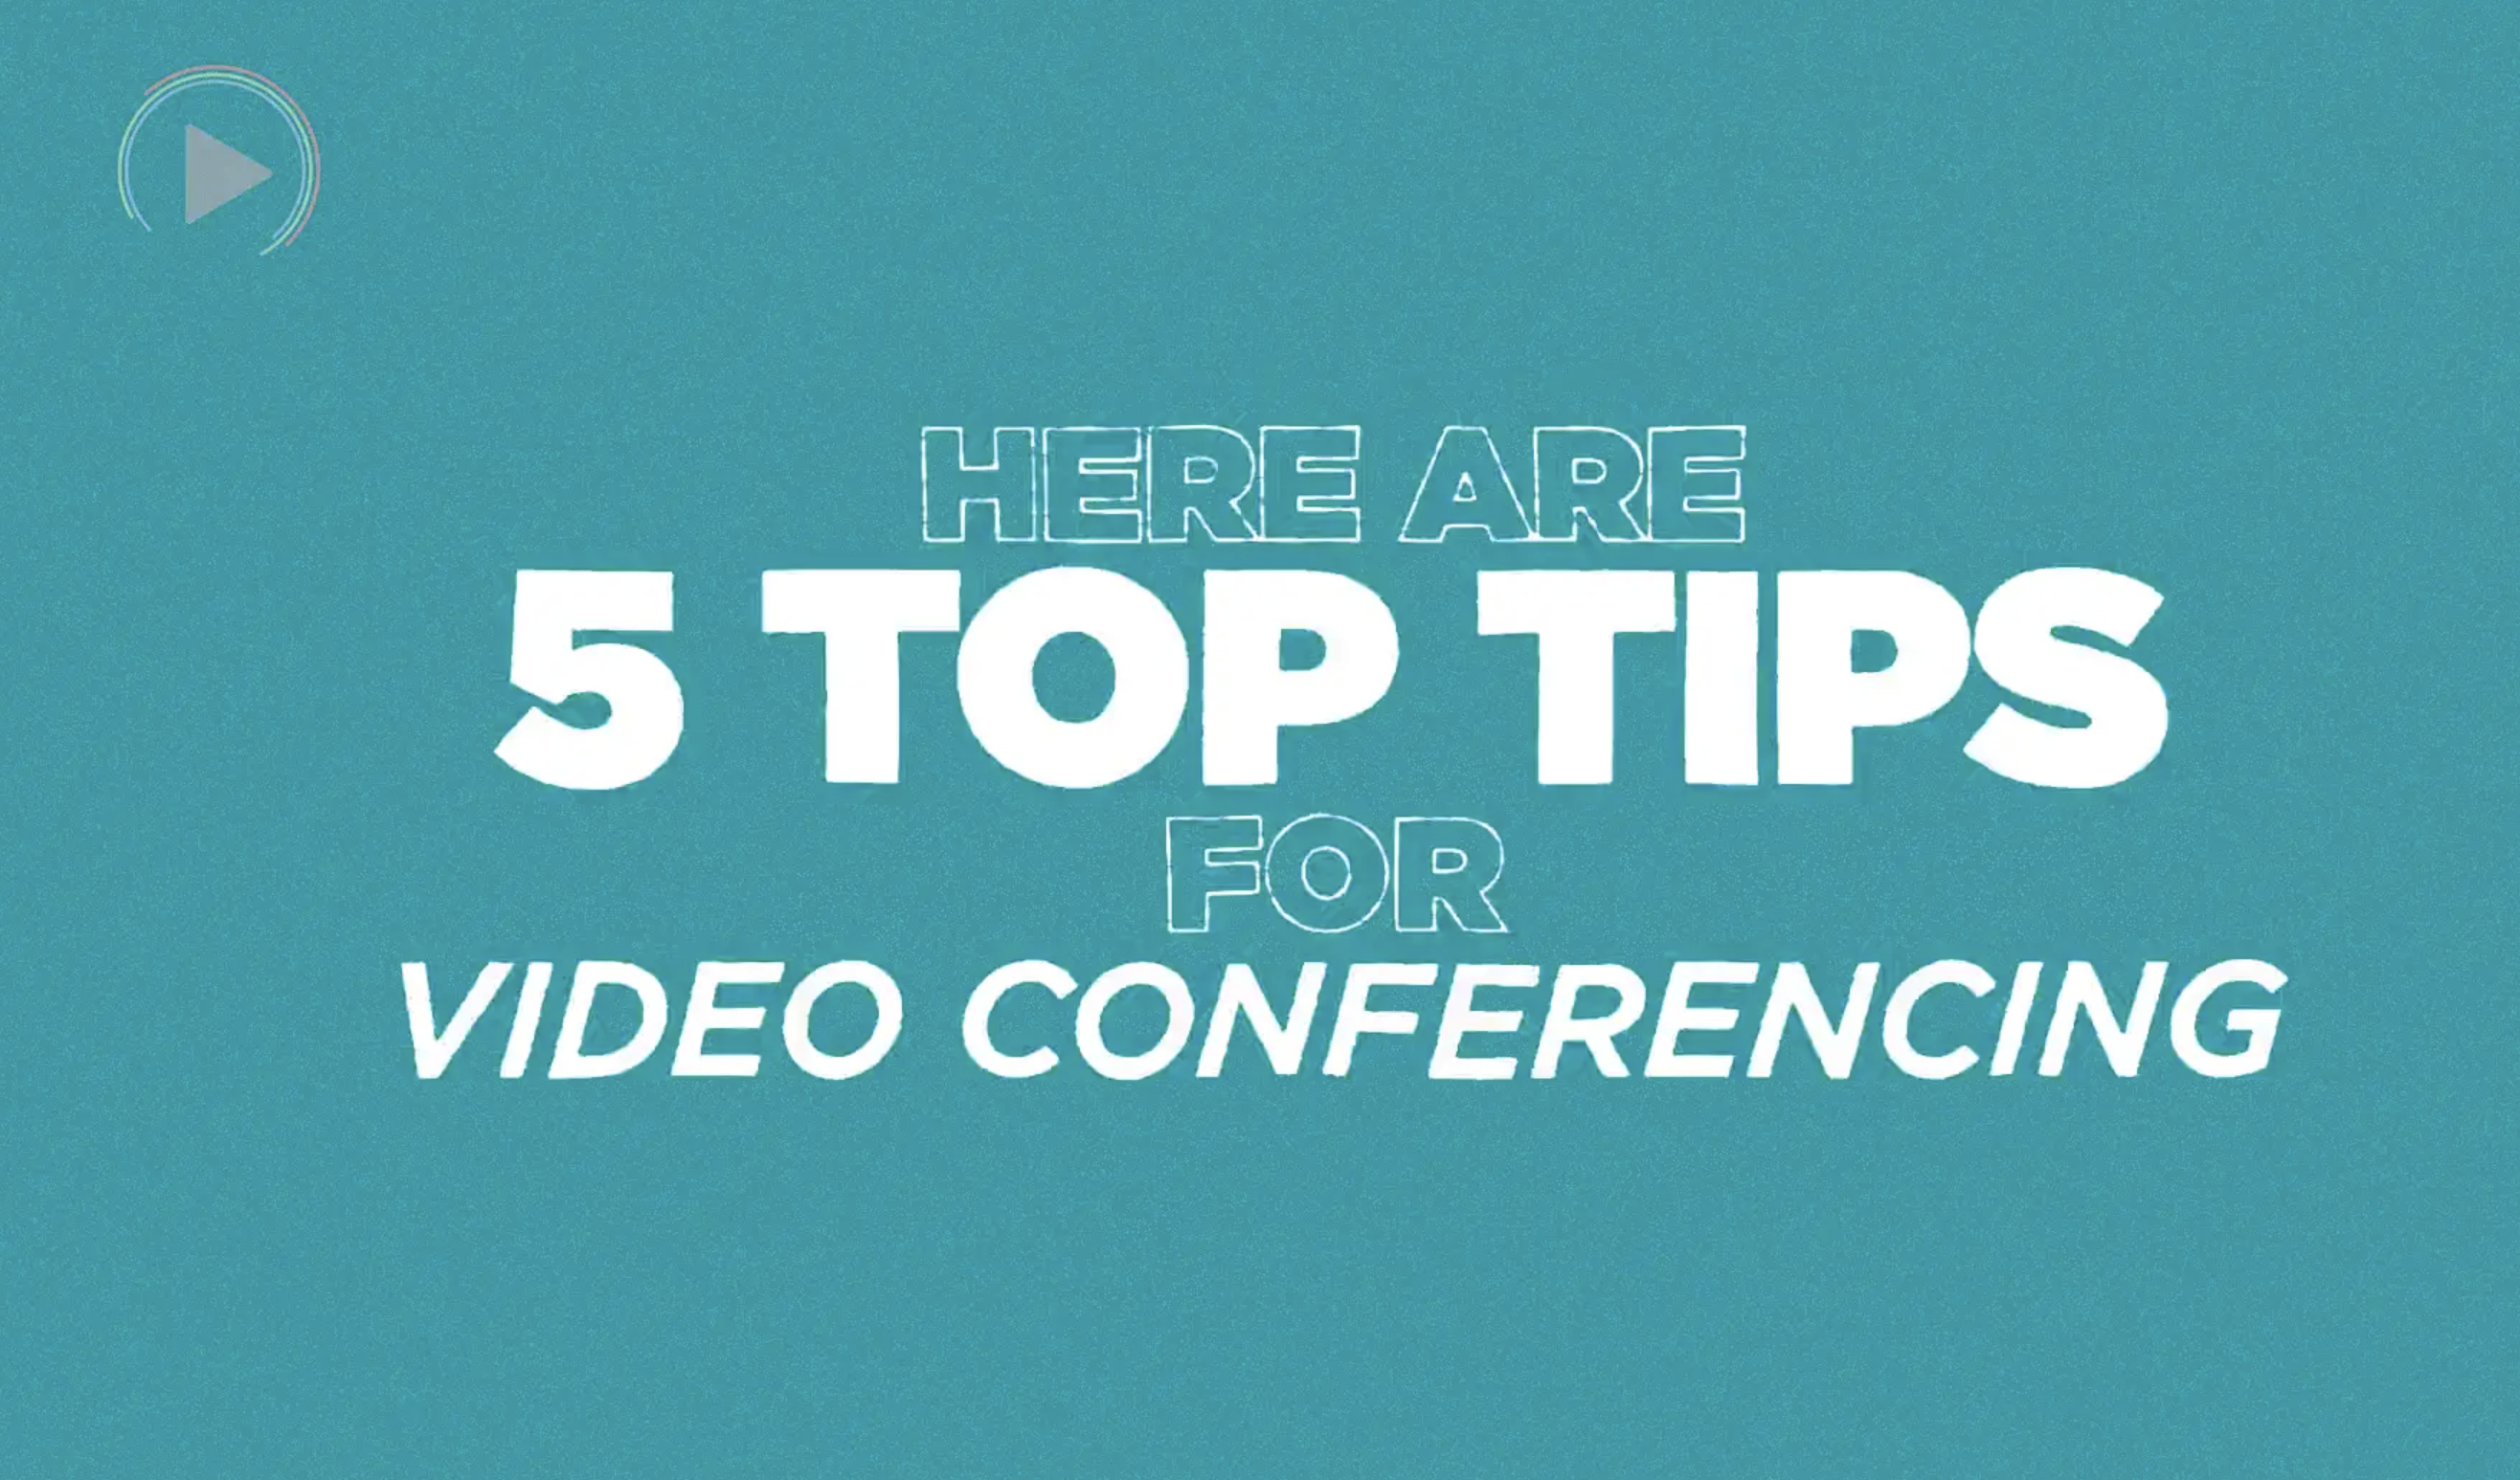 Top Tips for Video Conferencing